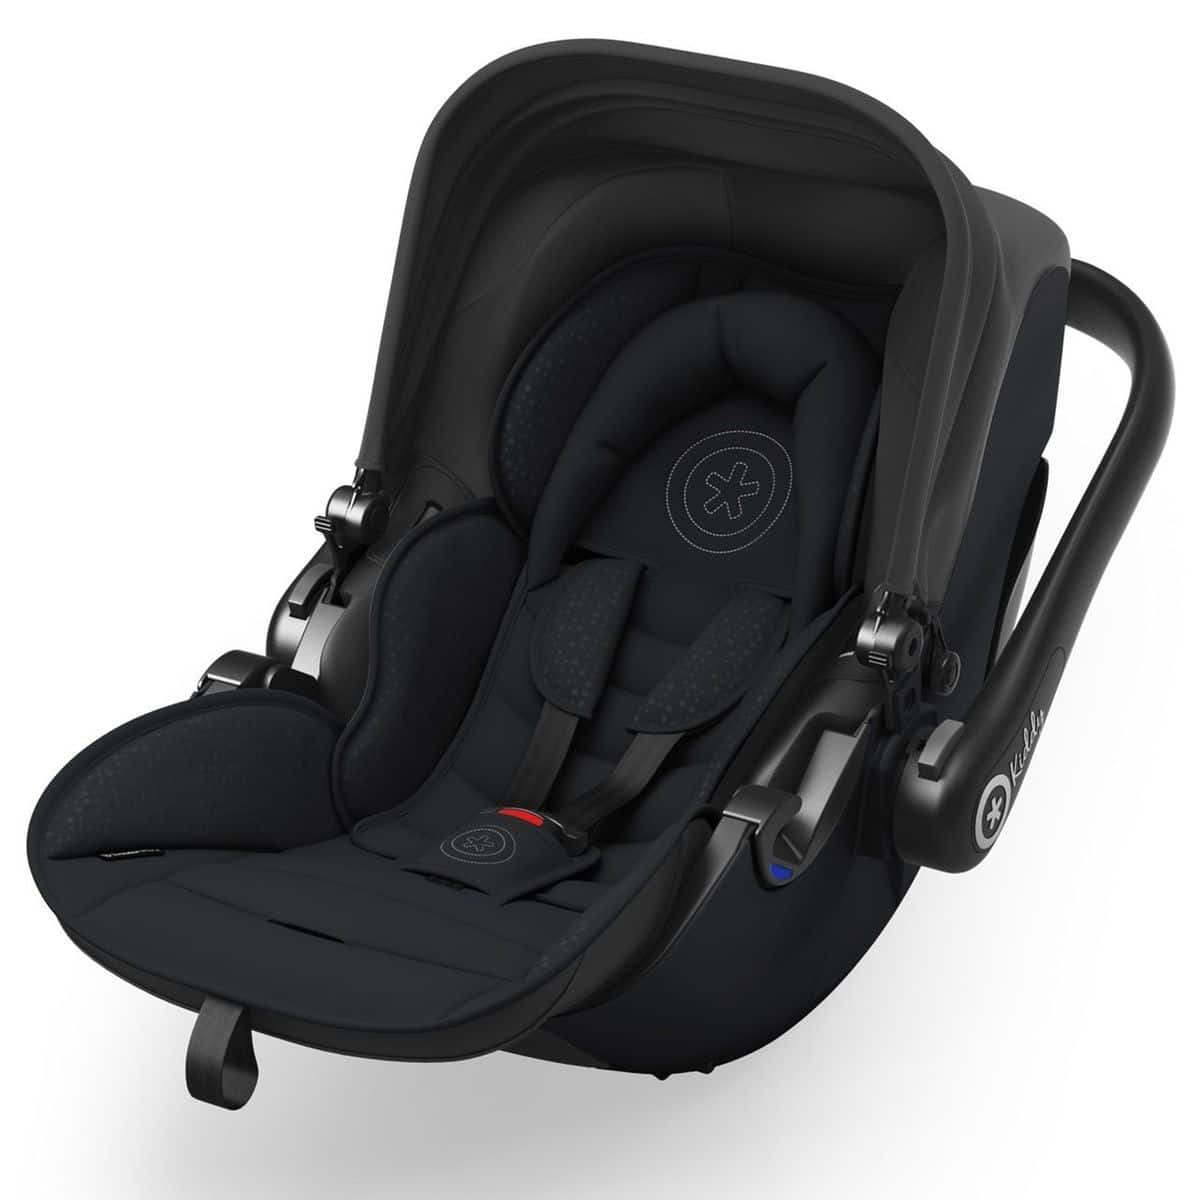 Siège auto Kiddy Evolution Pro 2